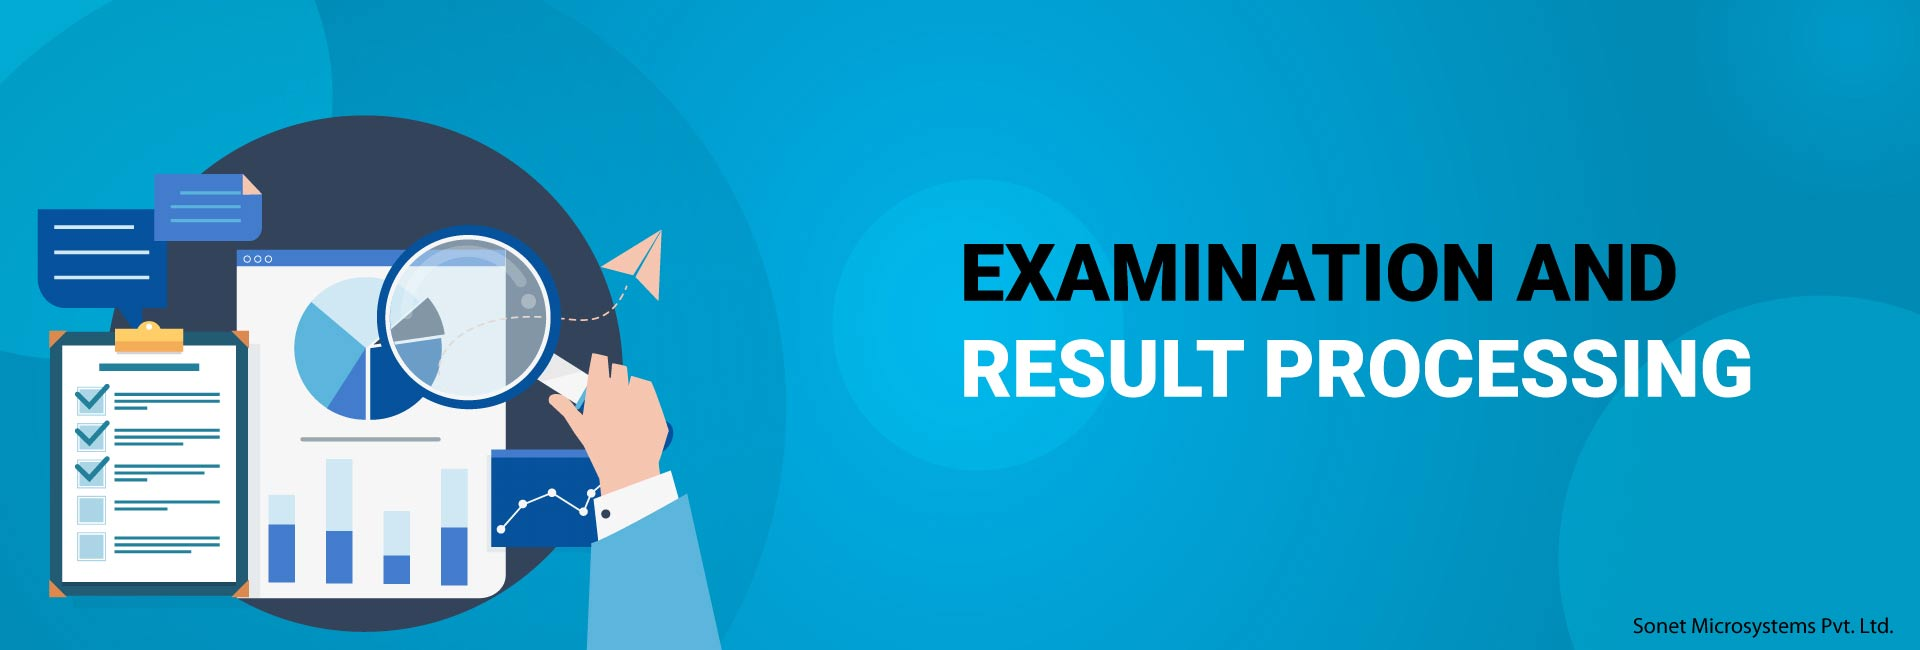 exam management software, result management system